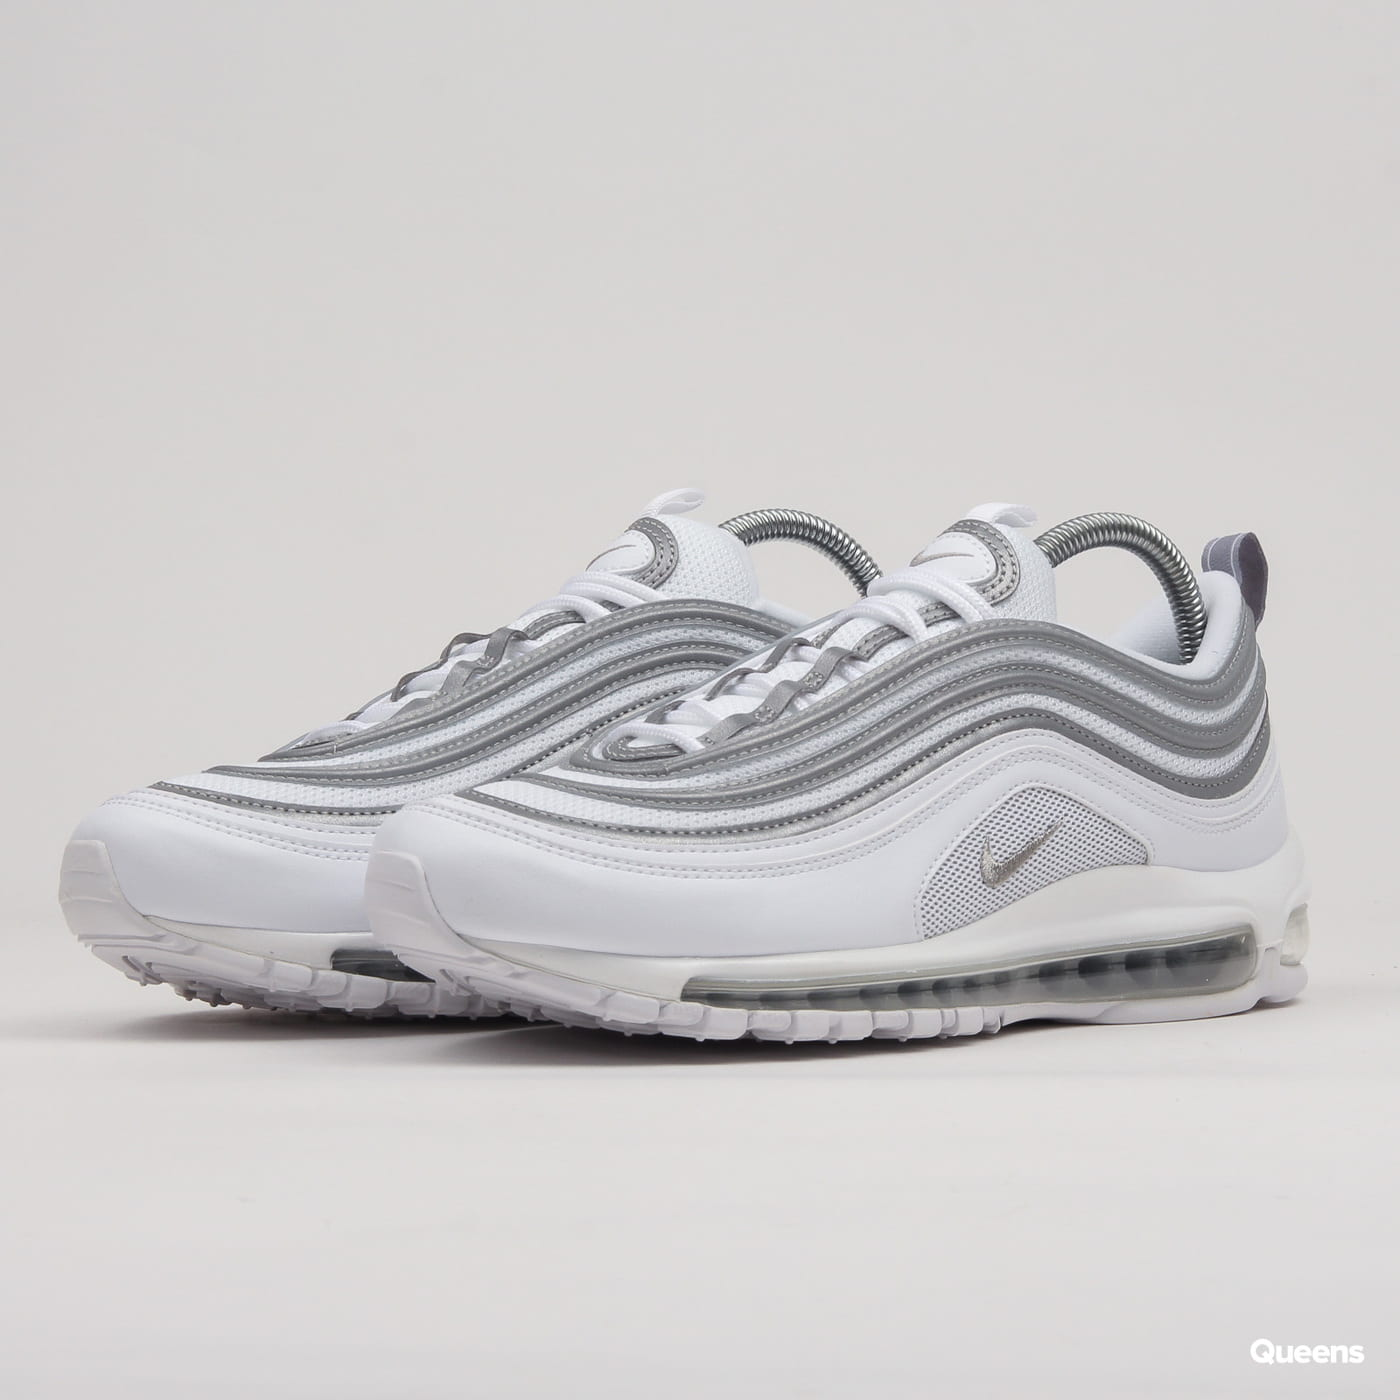 Sneakers Nike Air Max 97 White Reflect Silver Wolf Grey